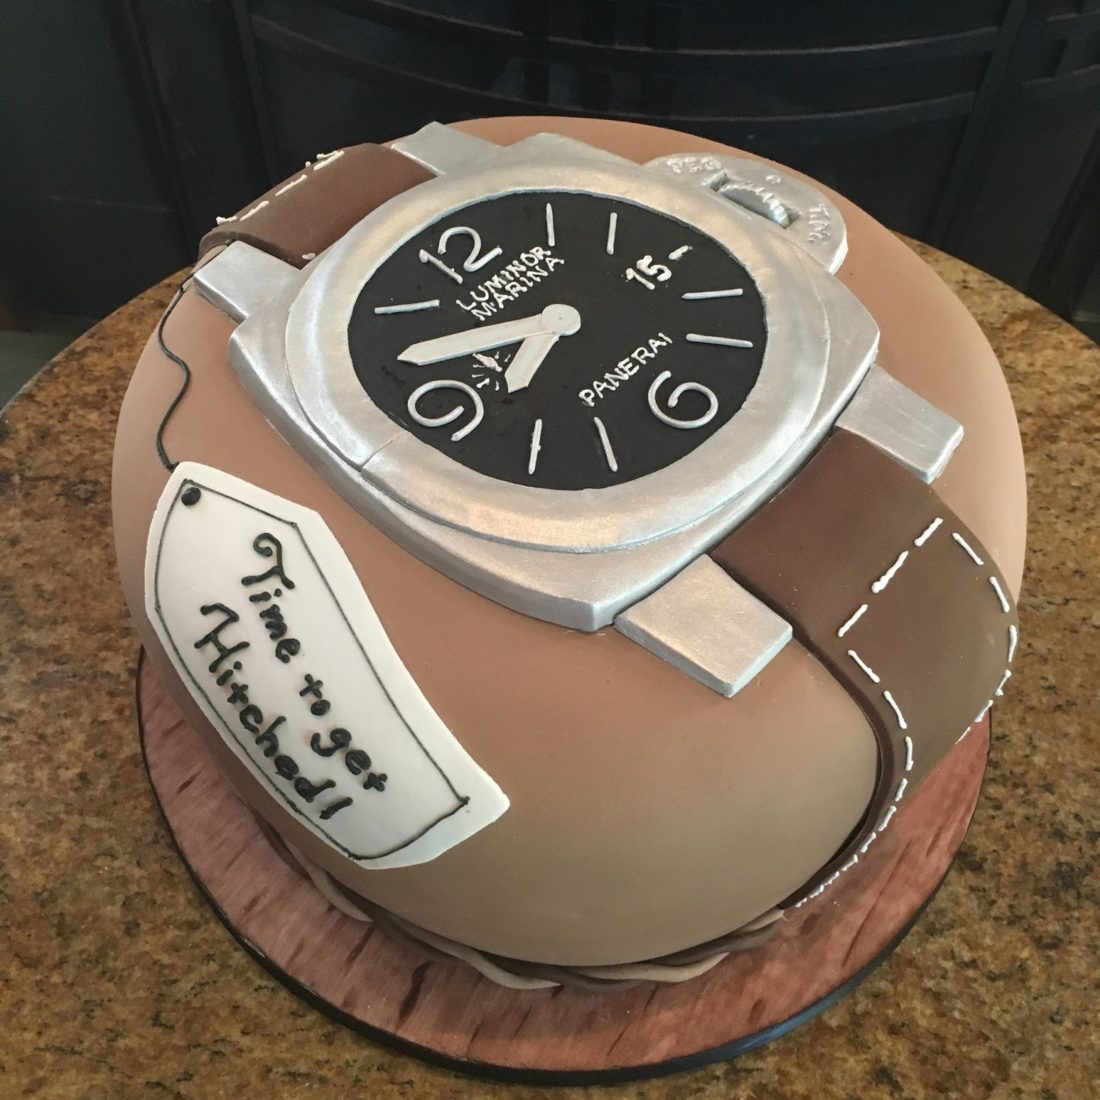 Panerai watch cake